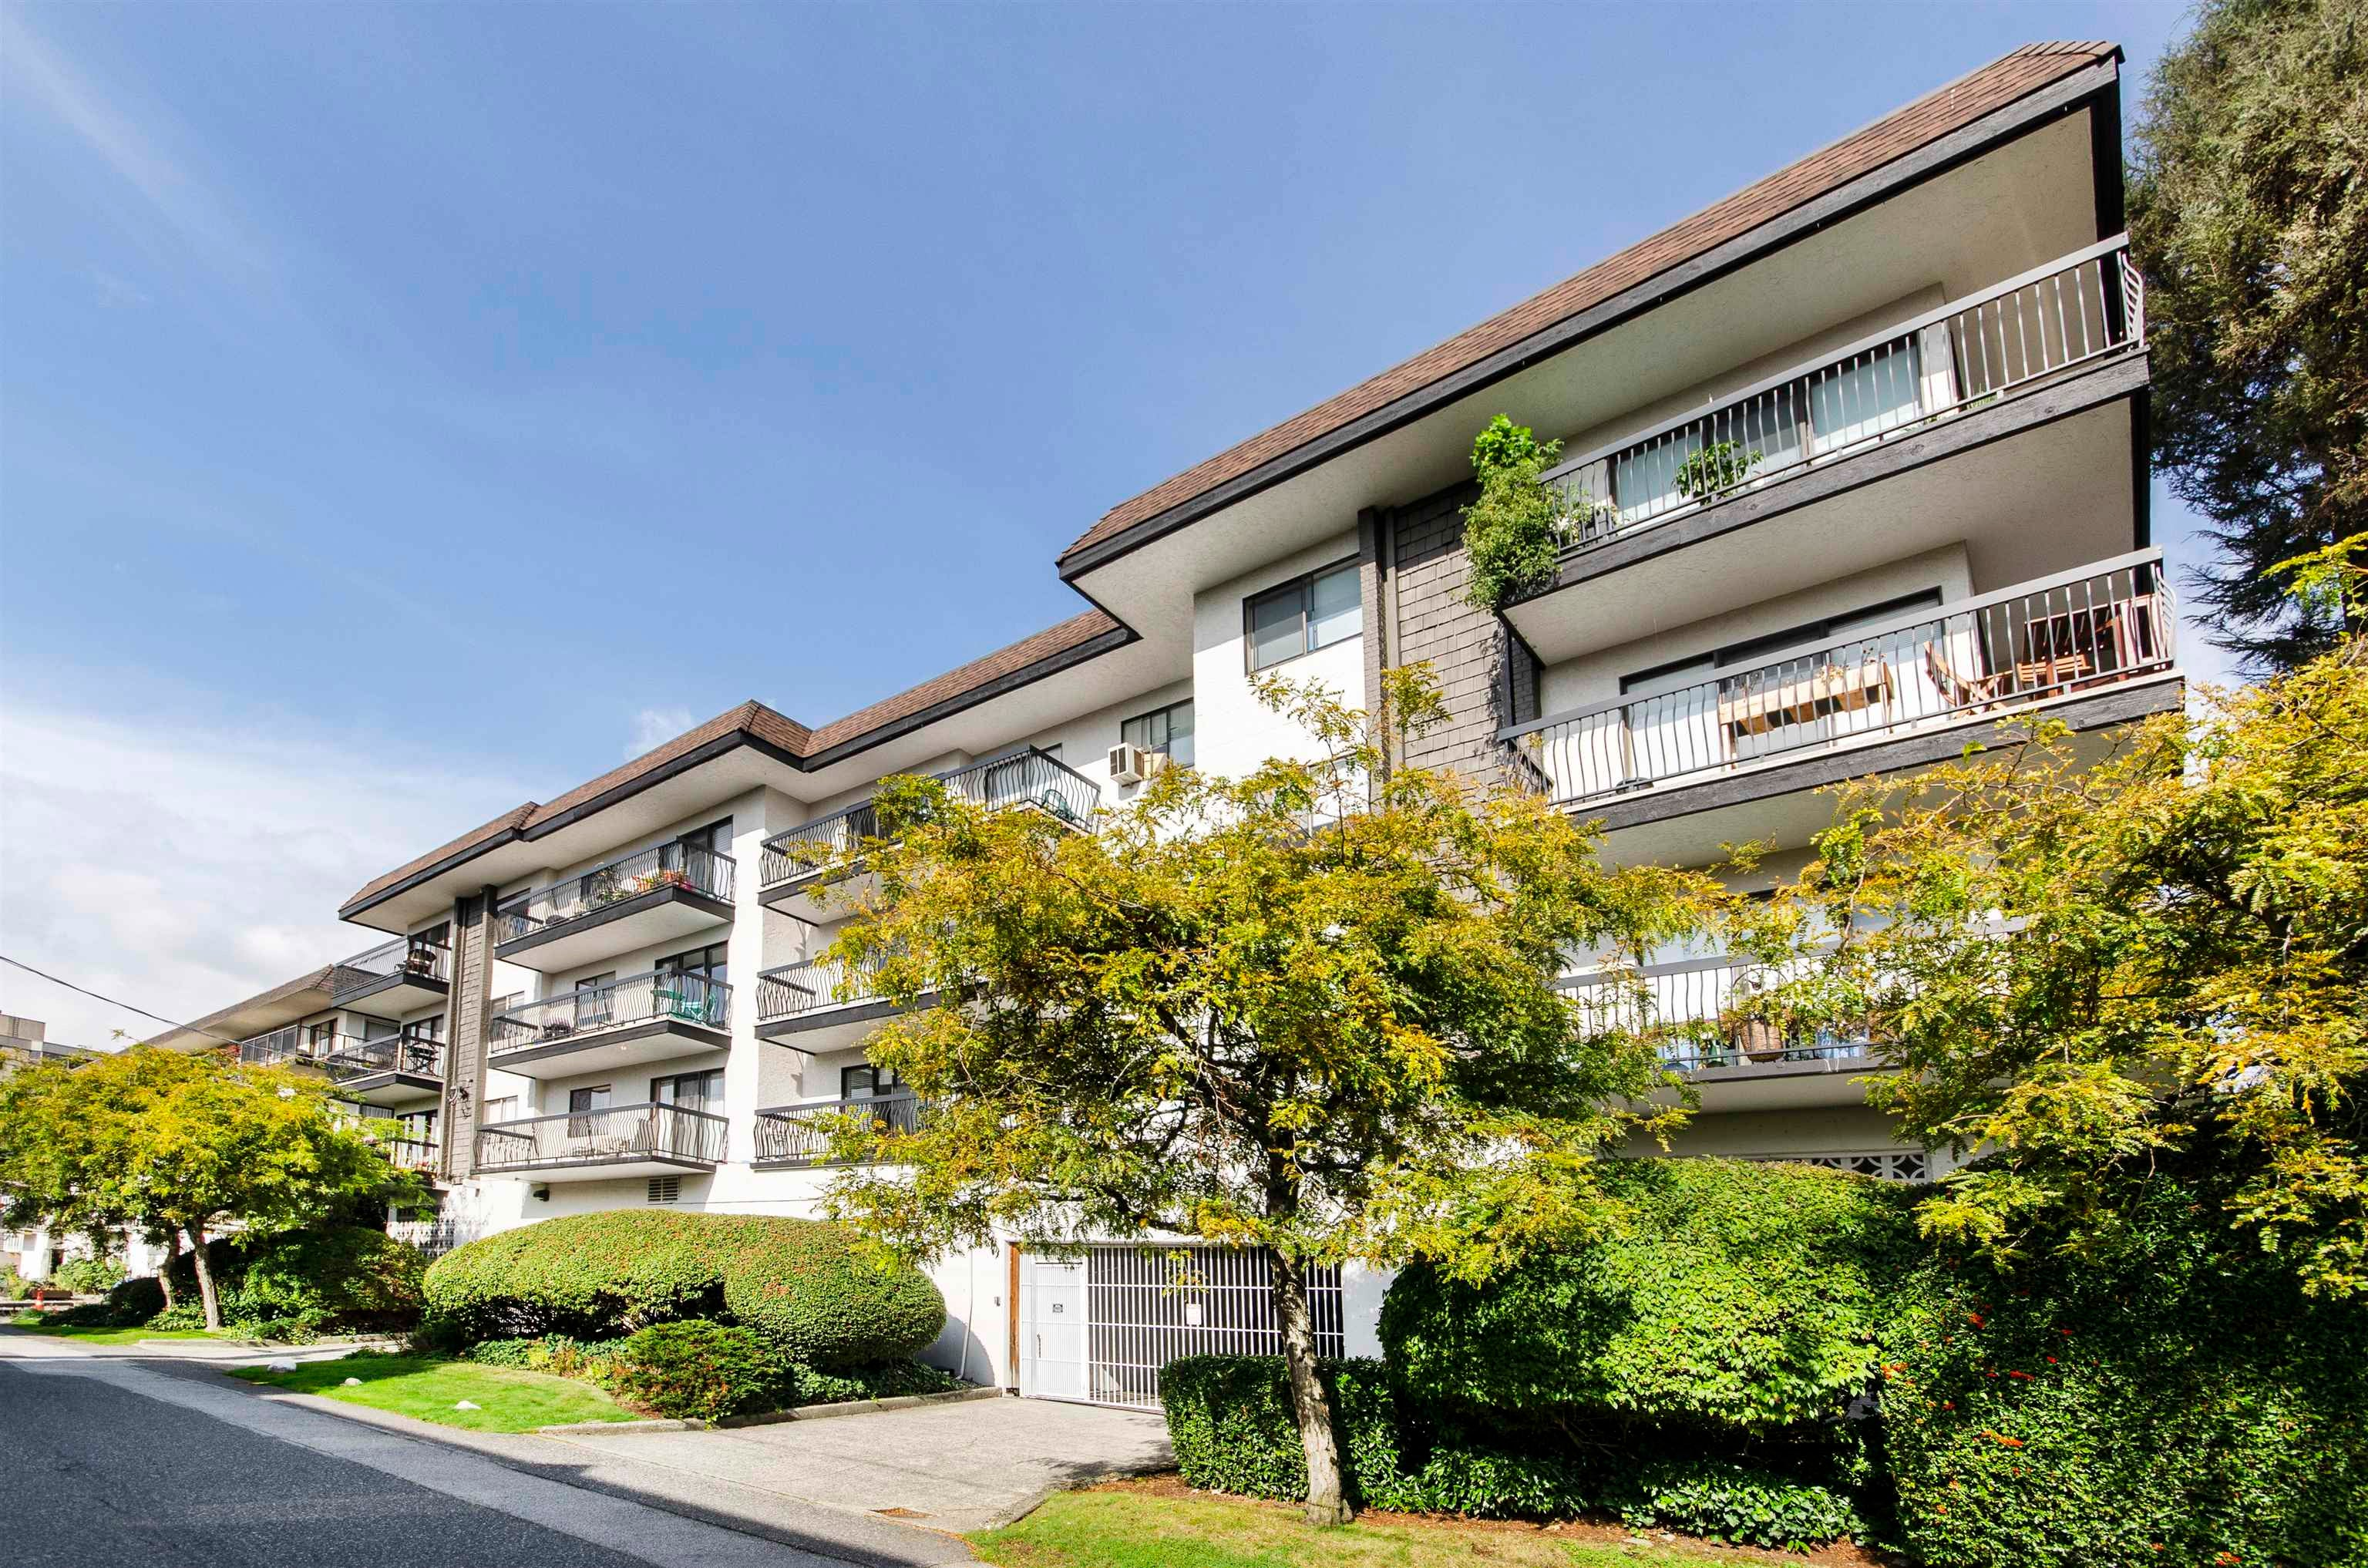 206 175 E 5TH STREET - Lower Lonsdale Apartment/Condo for sale, 2 Bedrooms (R2624759) - #24